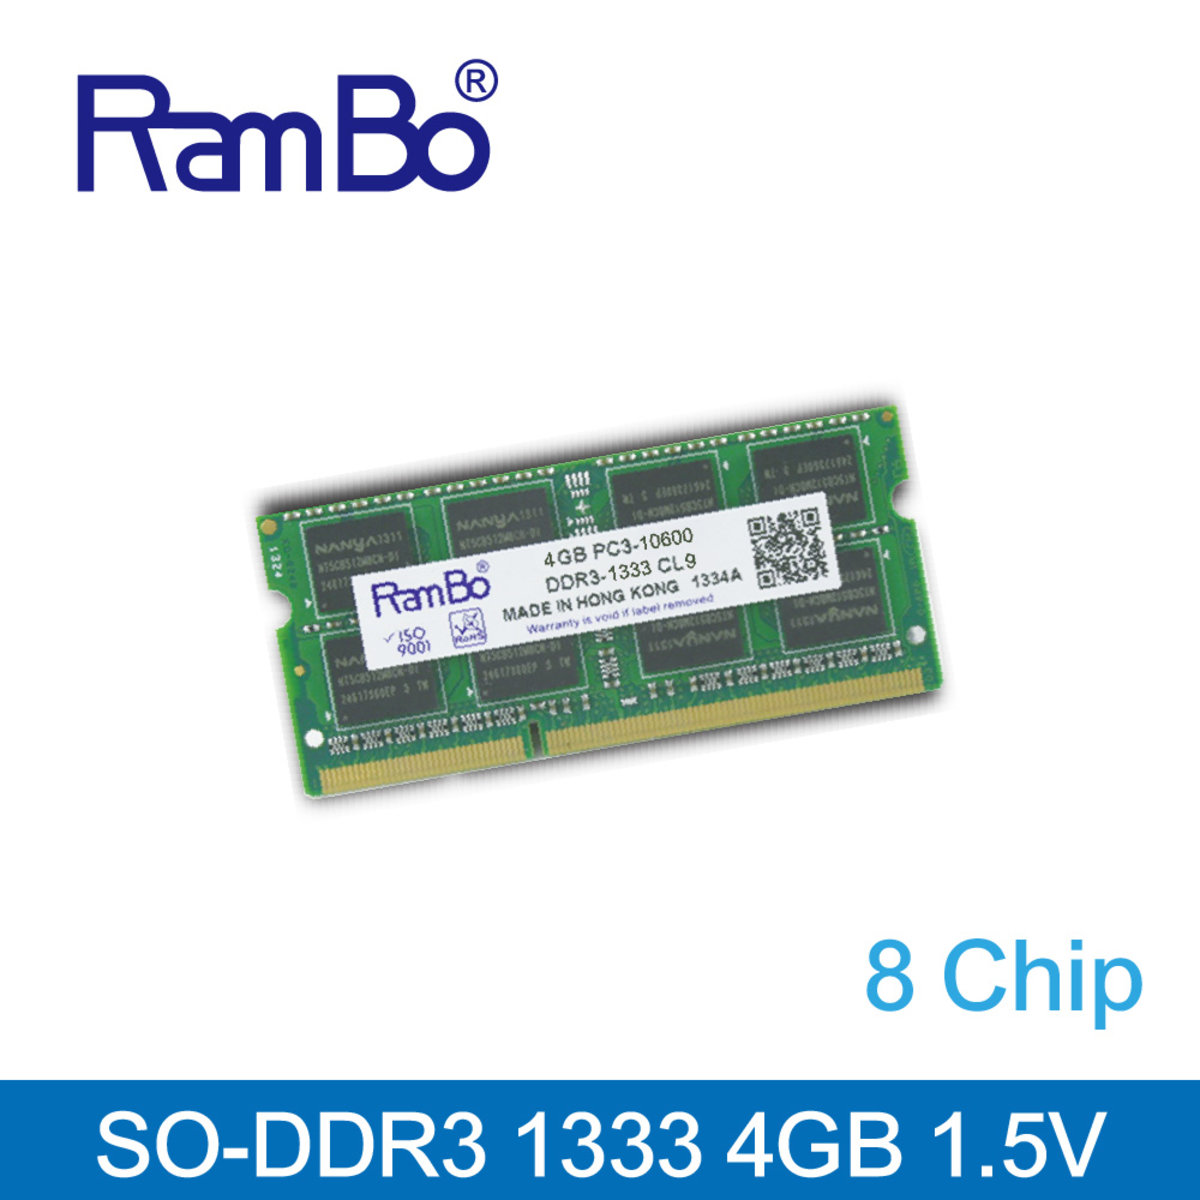 4GB DDR3 1333MHz SO DIMM 8-Chip 1.5V Memory for Notebook / Laptop